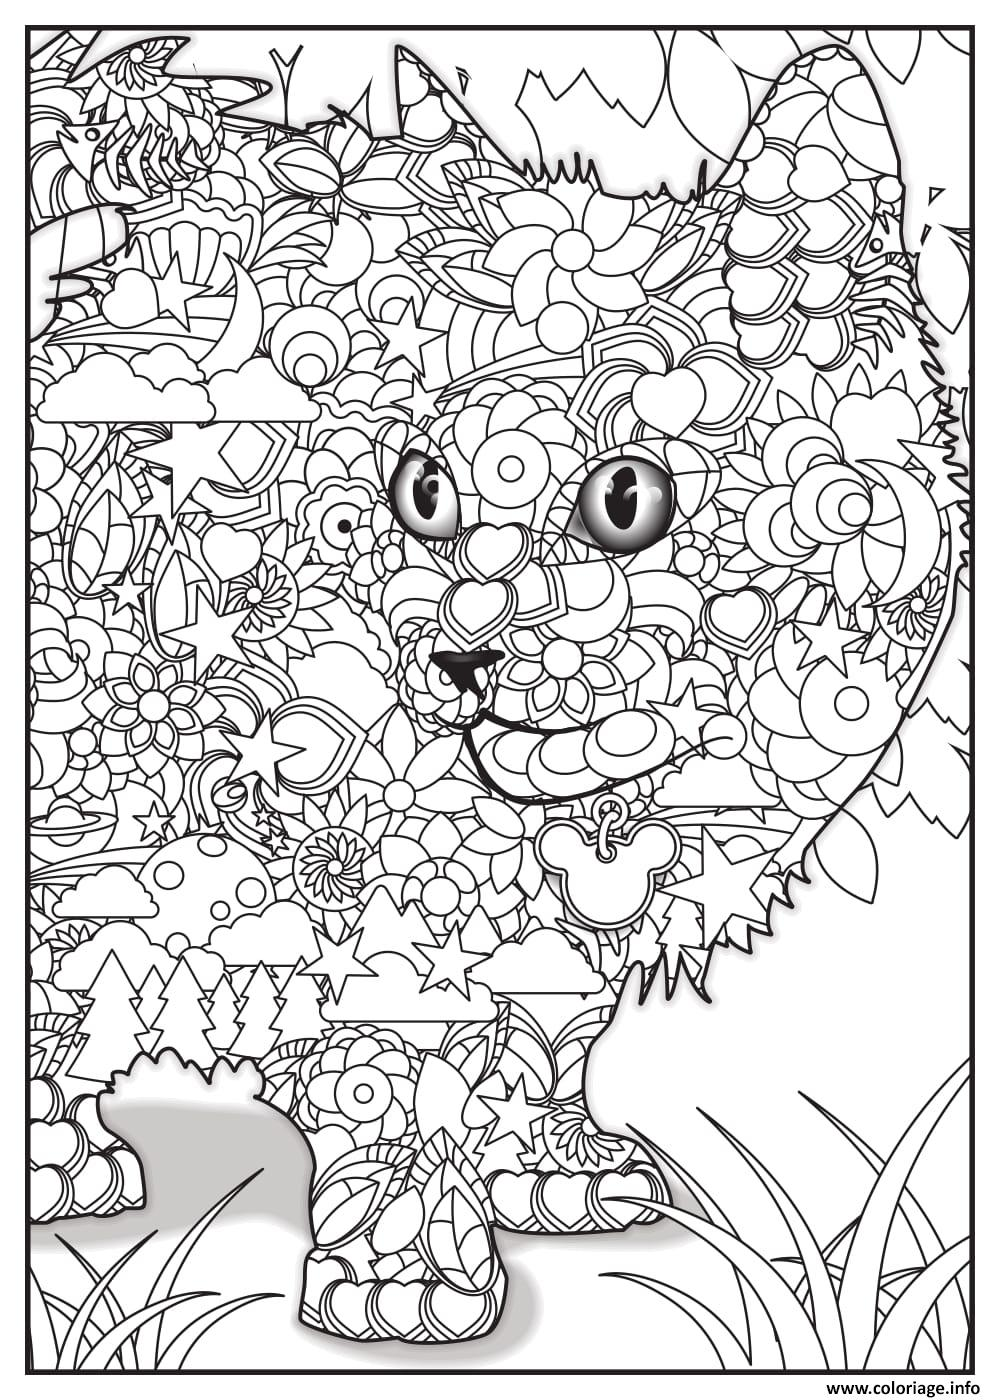 Coloriage chat adulte animaux dessin - Image de chat a imprimer ...